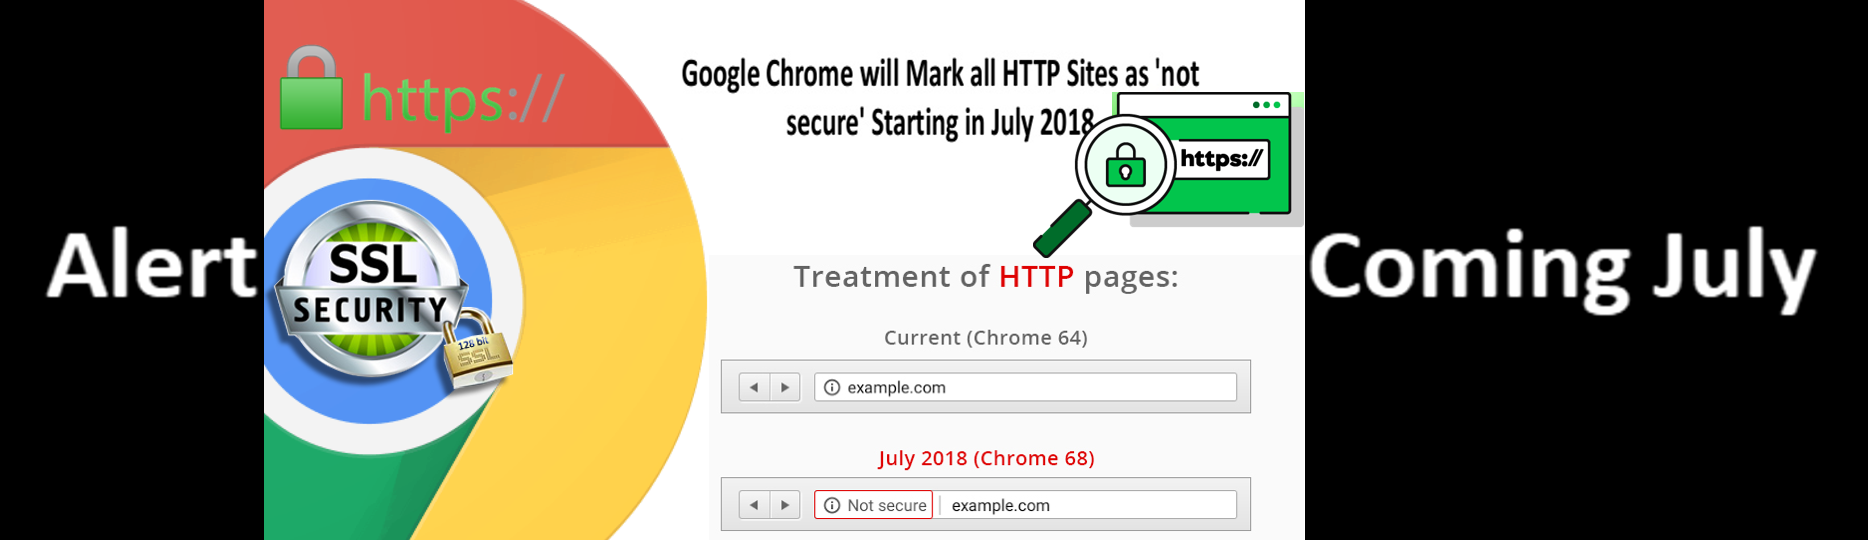 Google Chrome July 2018 Update - Http sites marked not secure - Phone App Marketing